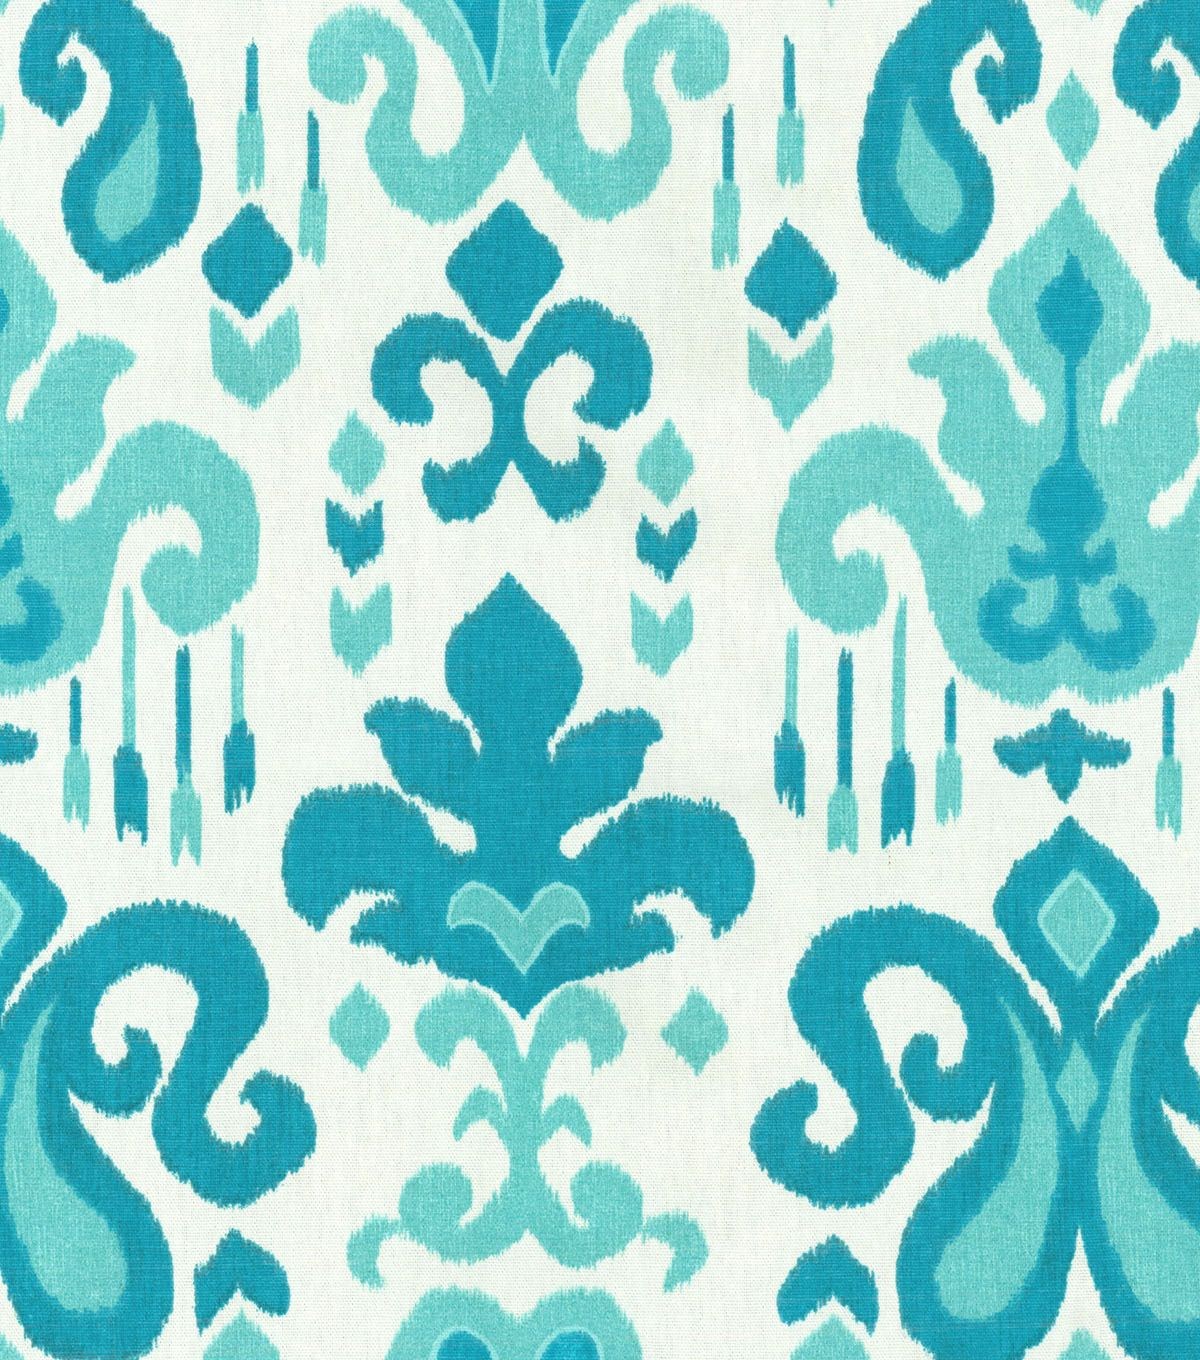 16++ Turquoise home decor fabric ideas in 2021